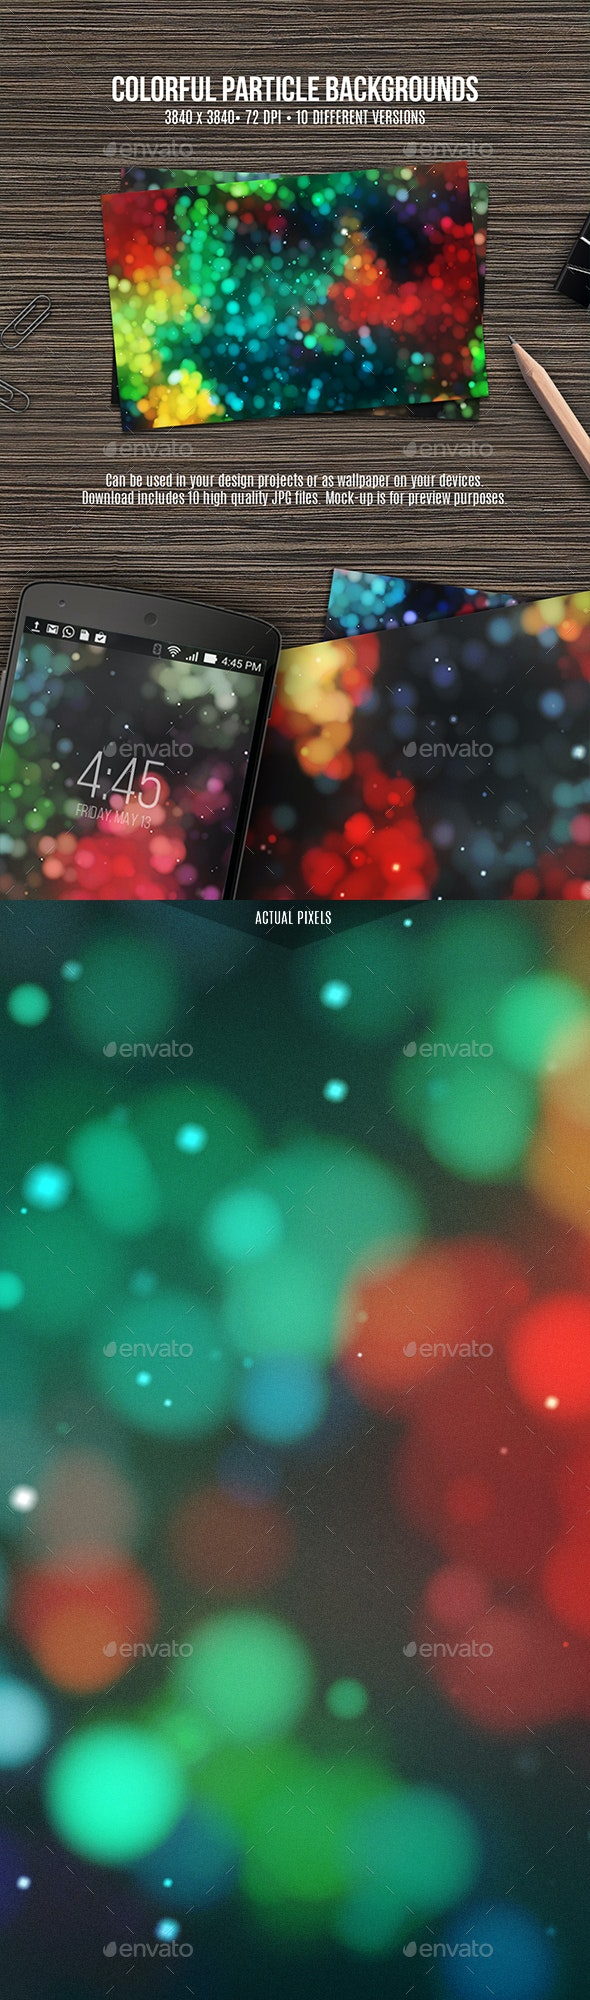 Colorful Particle Backgrounds - Abstract Backgrounds